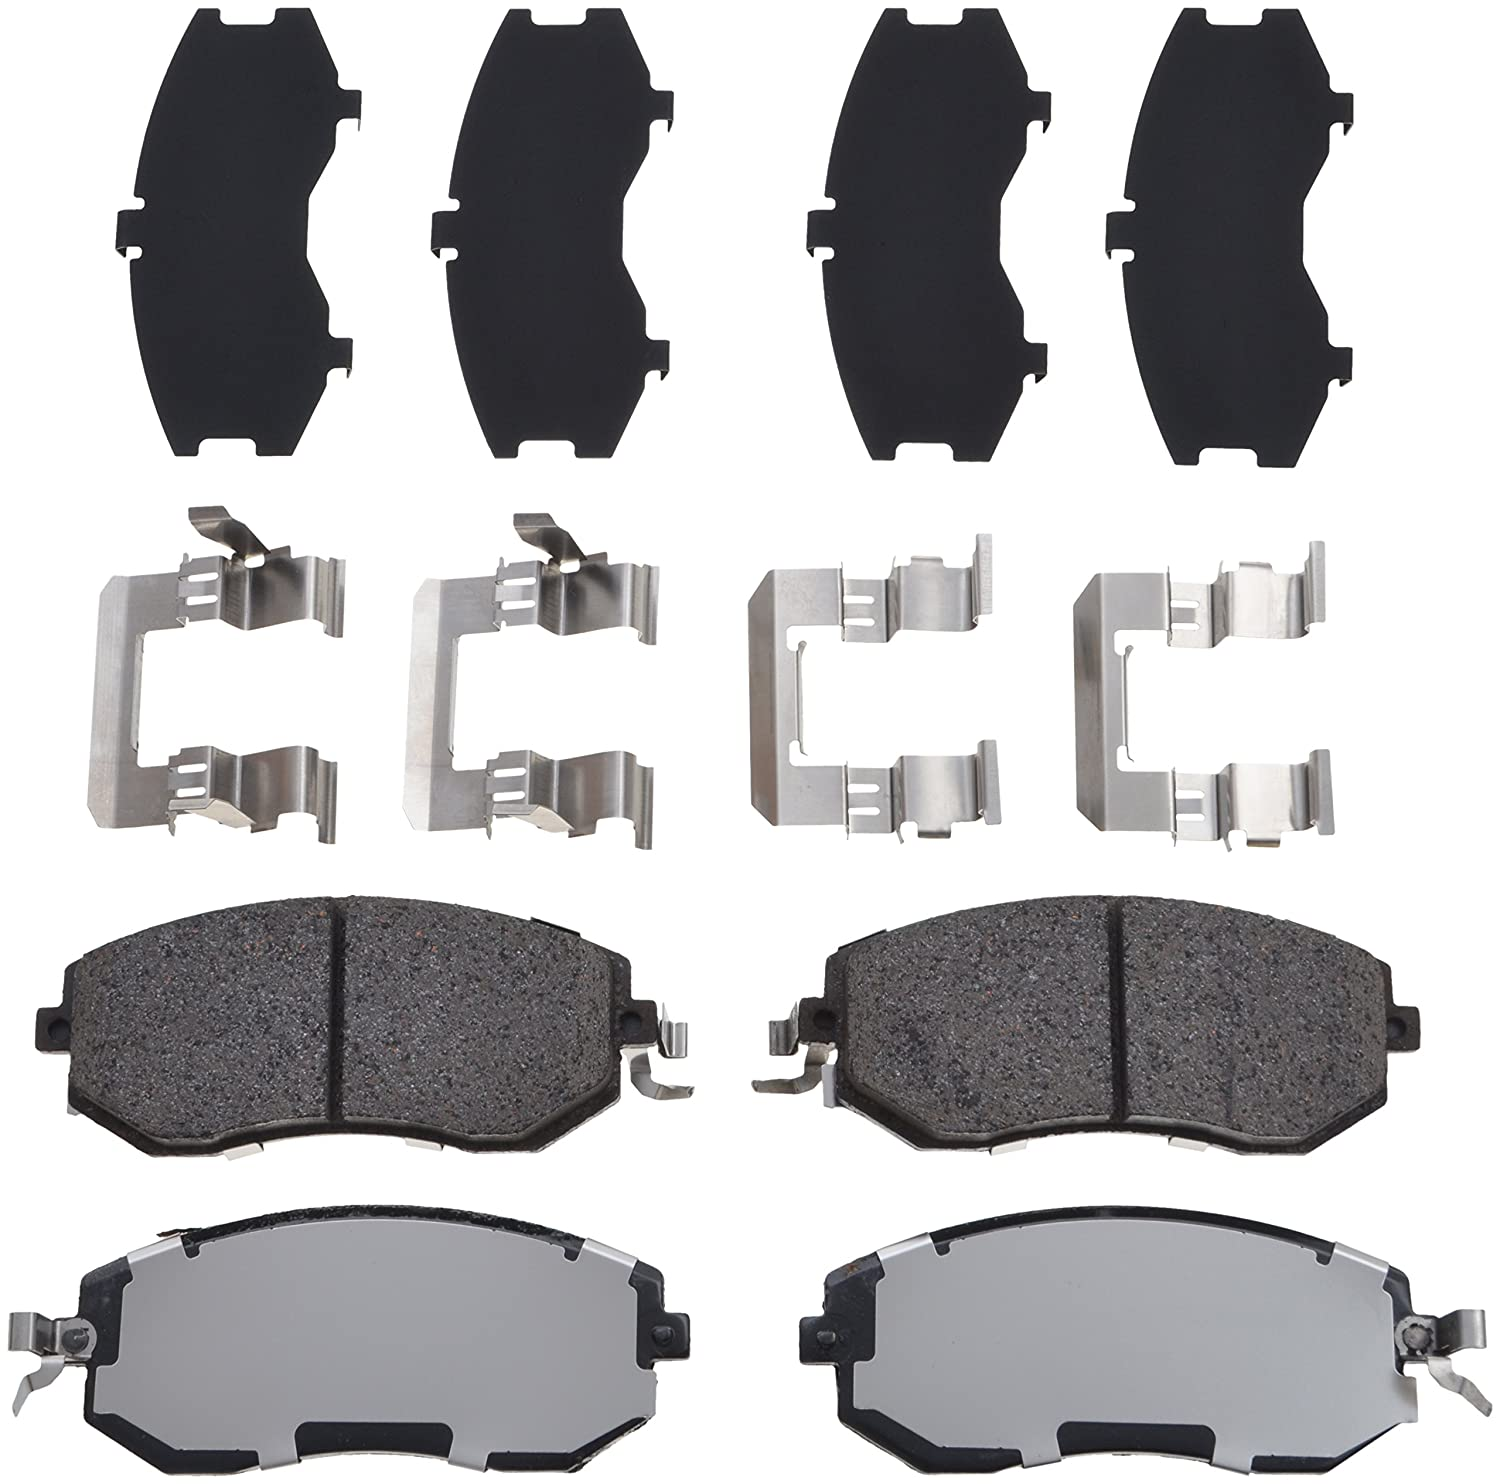 TRW TPC1539 Premium Ceramic Front Disc Brake Pad Set